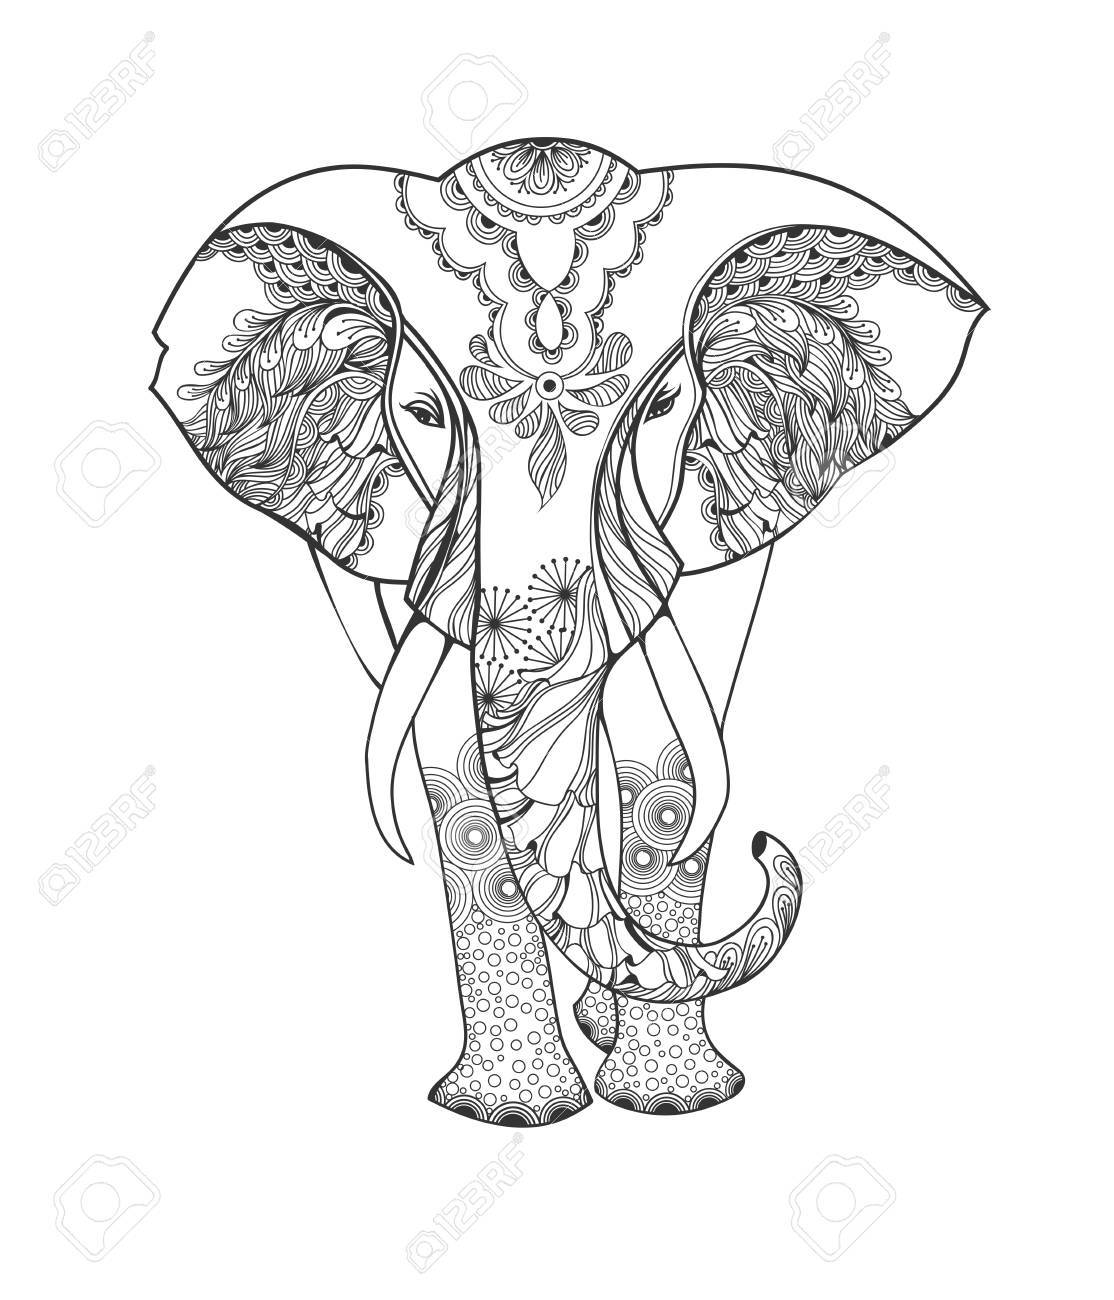 Zentangle Animal. Stylized Fantasy Patterned Elephant. Hand Drawn ...